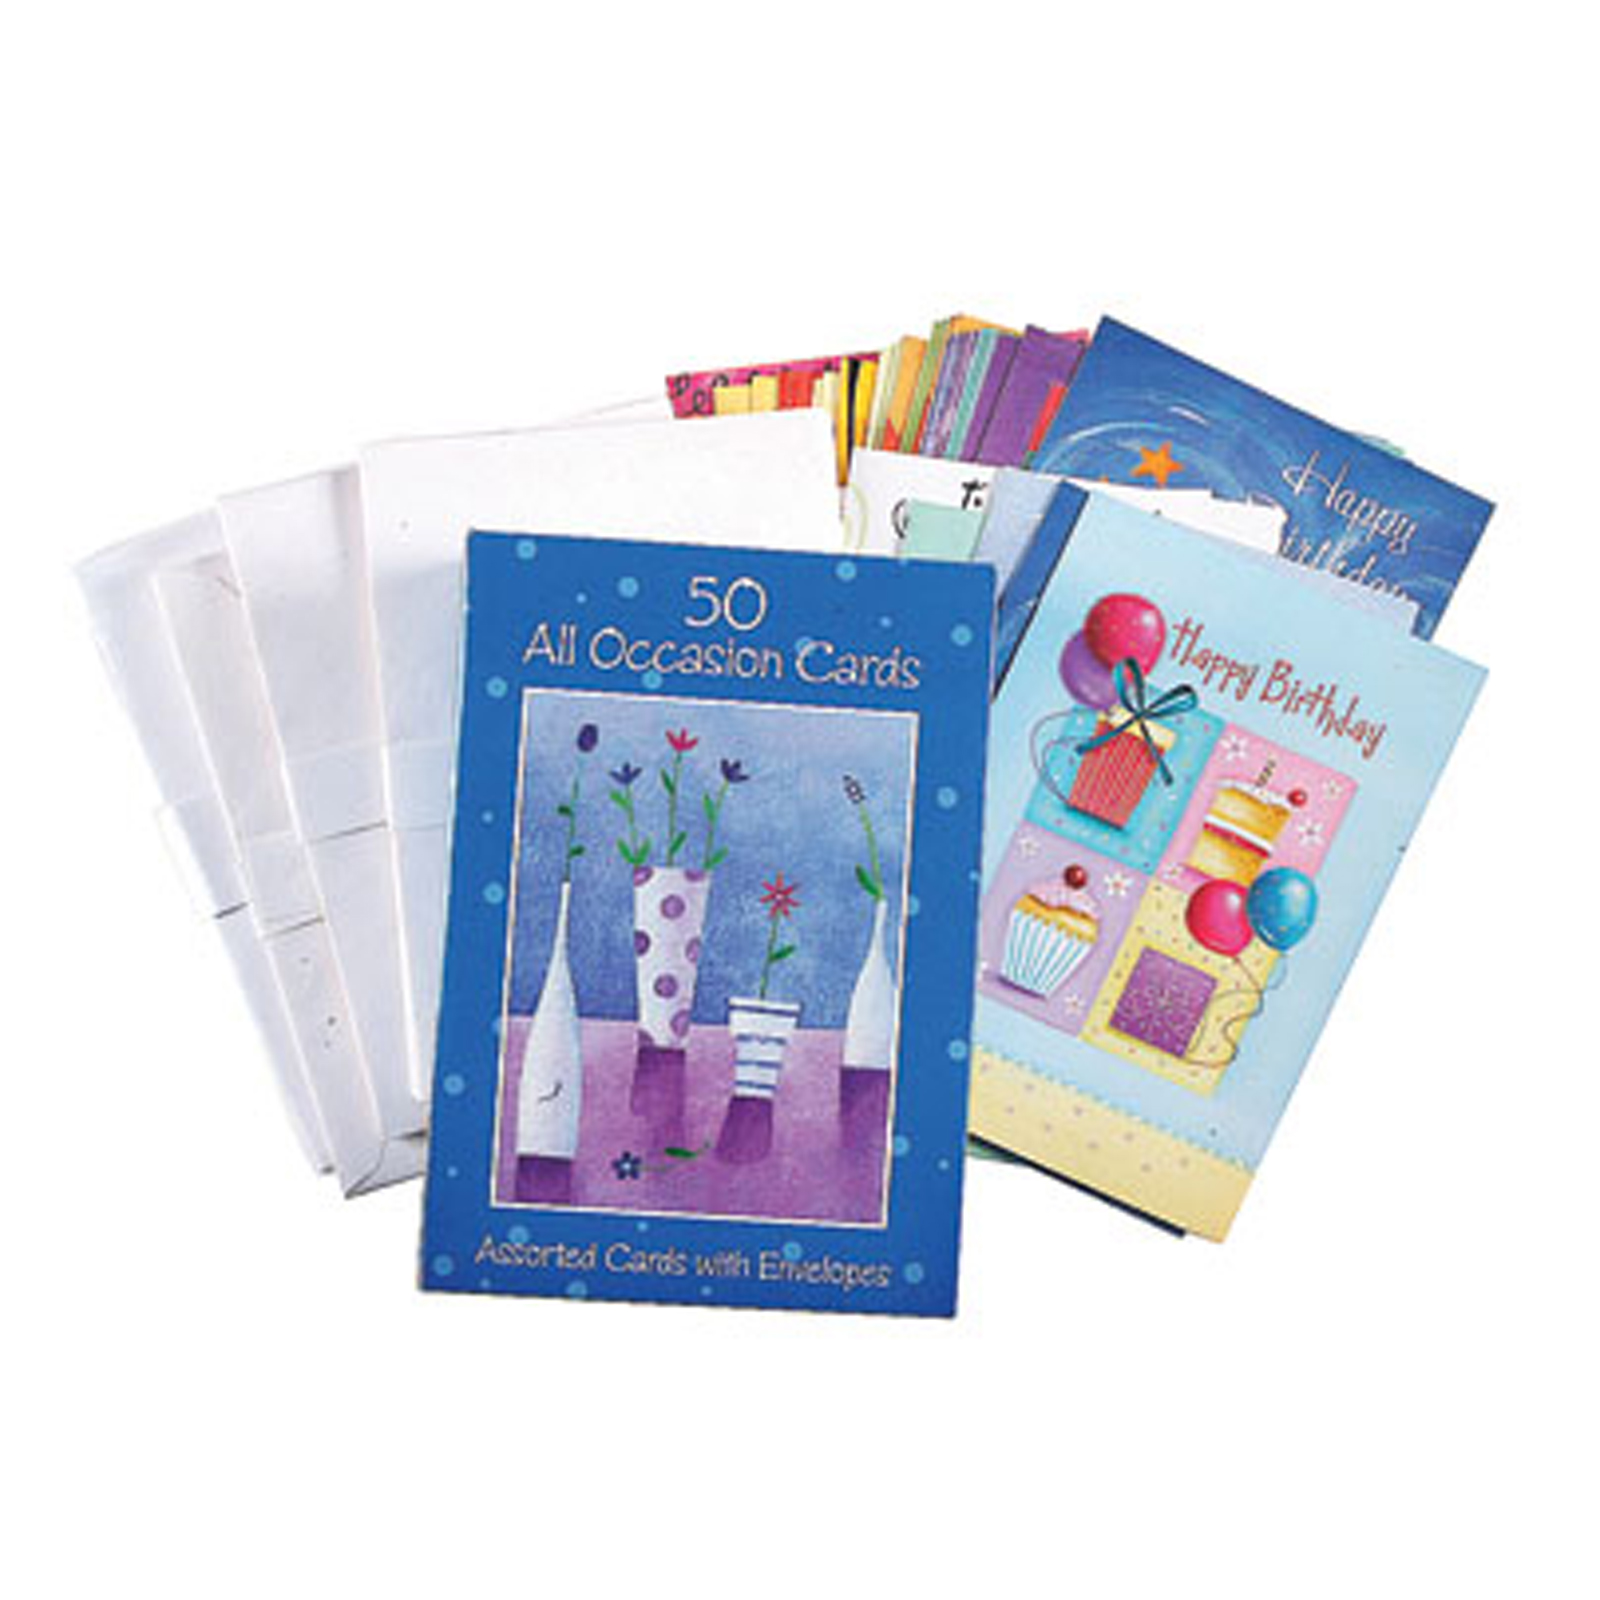 All Occasion Greeting Cards, 50 Ct - 1 Pkg